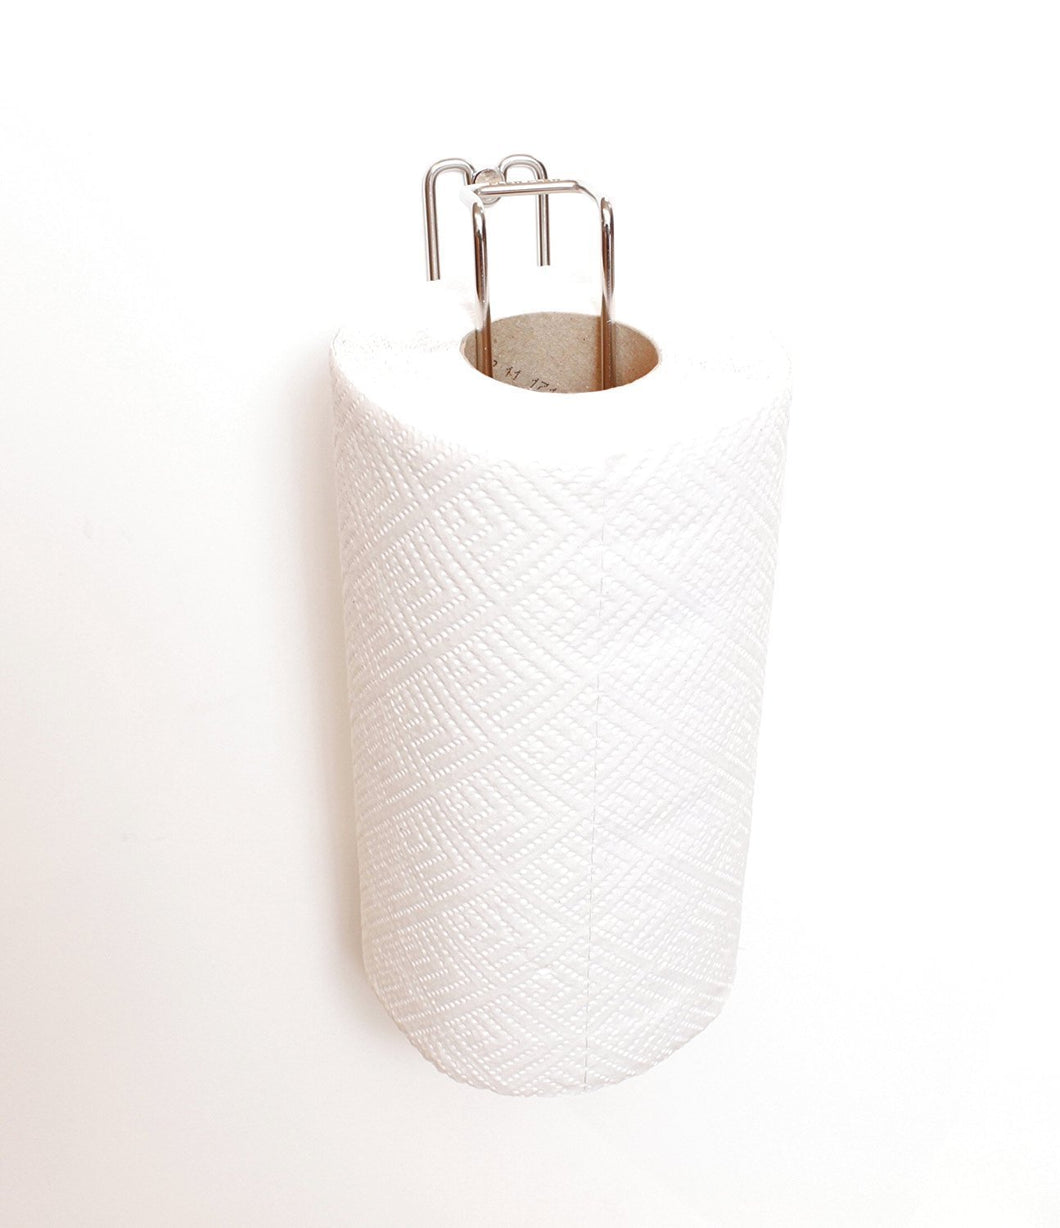 Budget friendly plew plew kitchen roll holder paper towel stand stainless steel wall mounted